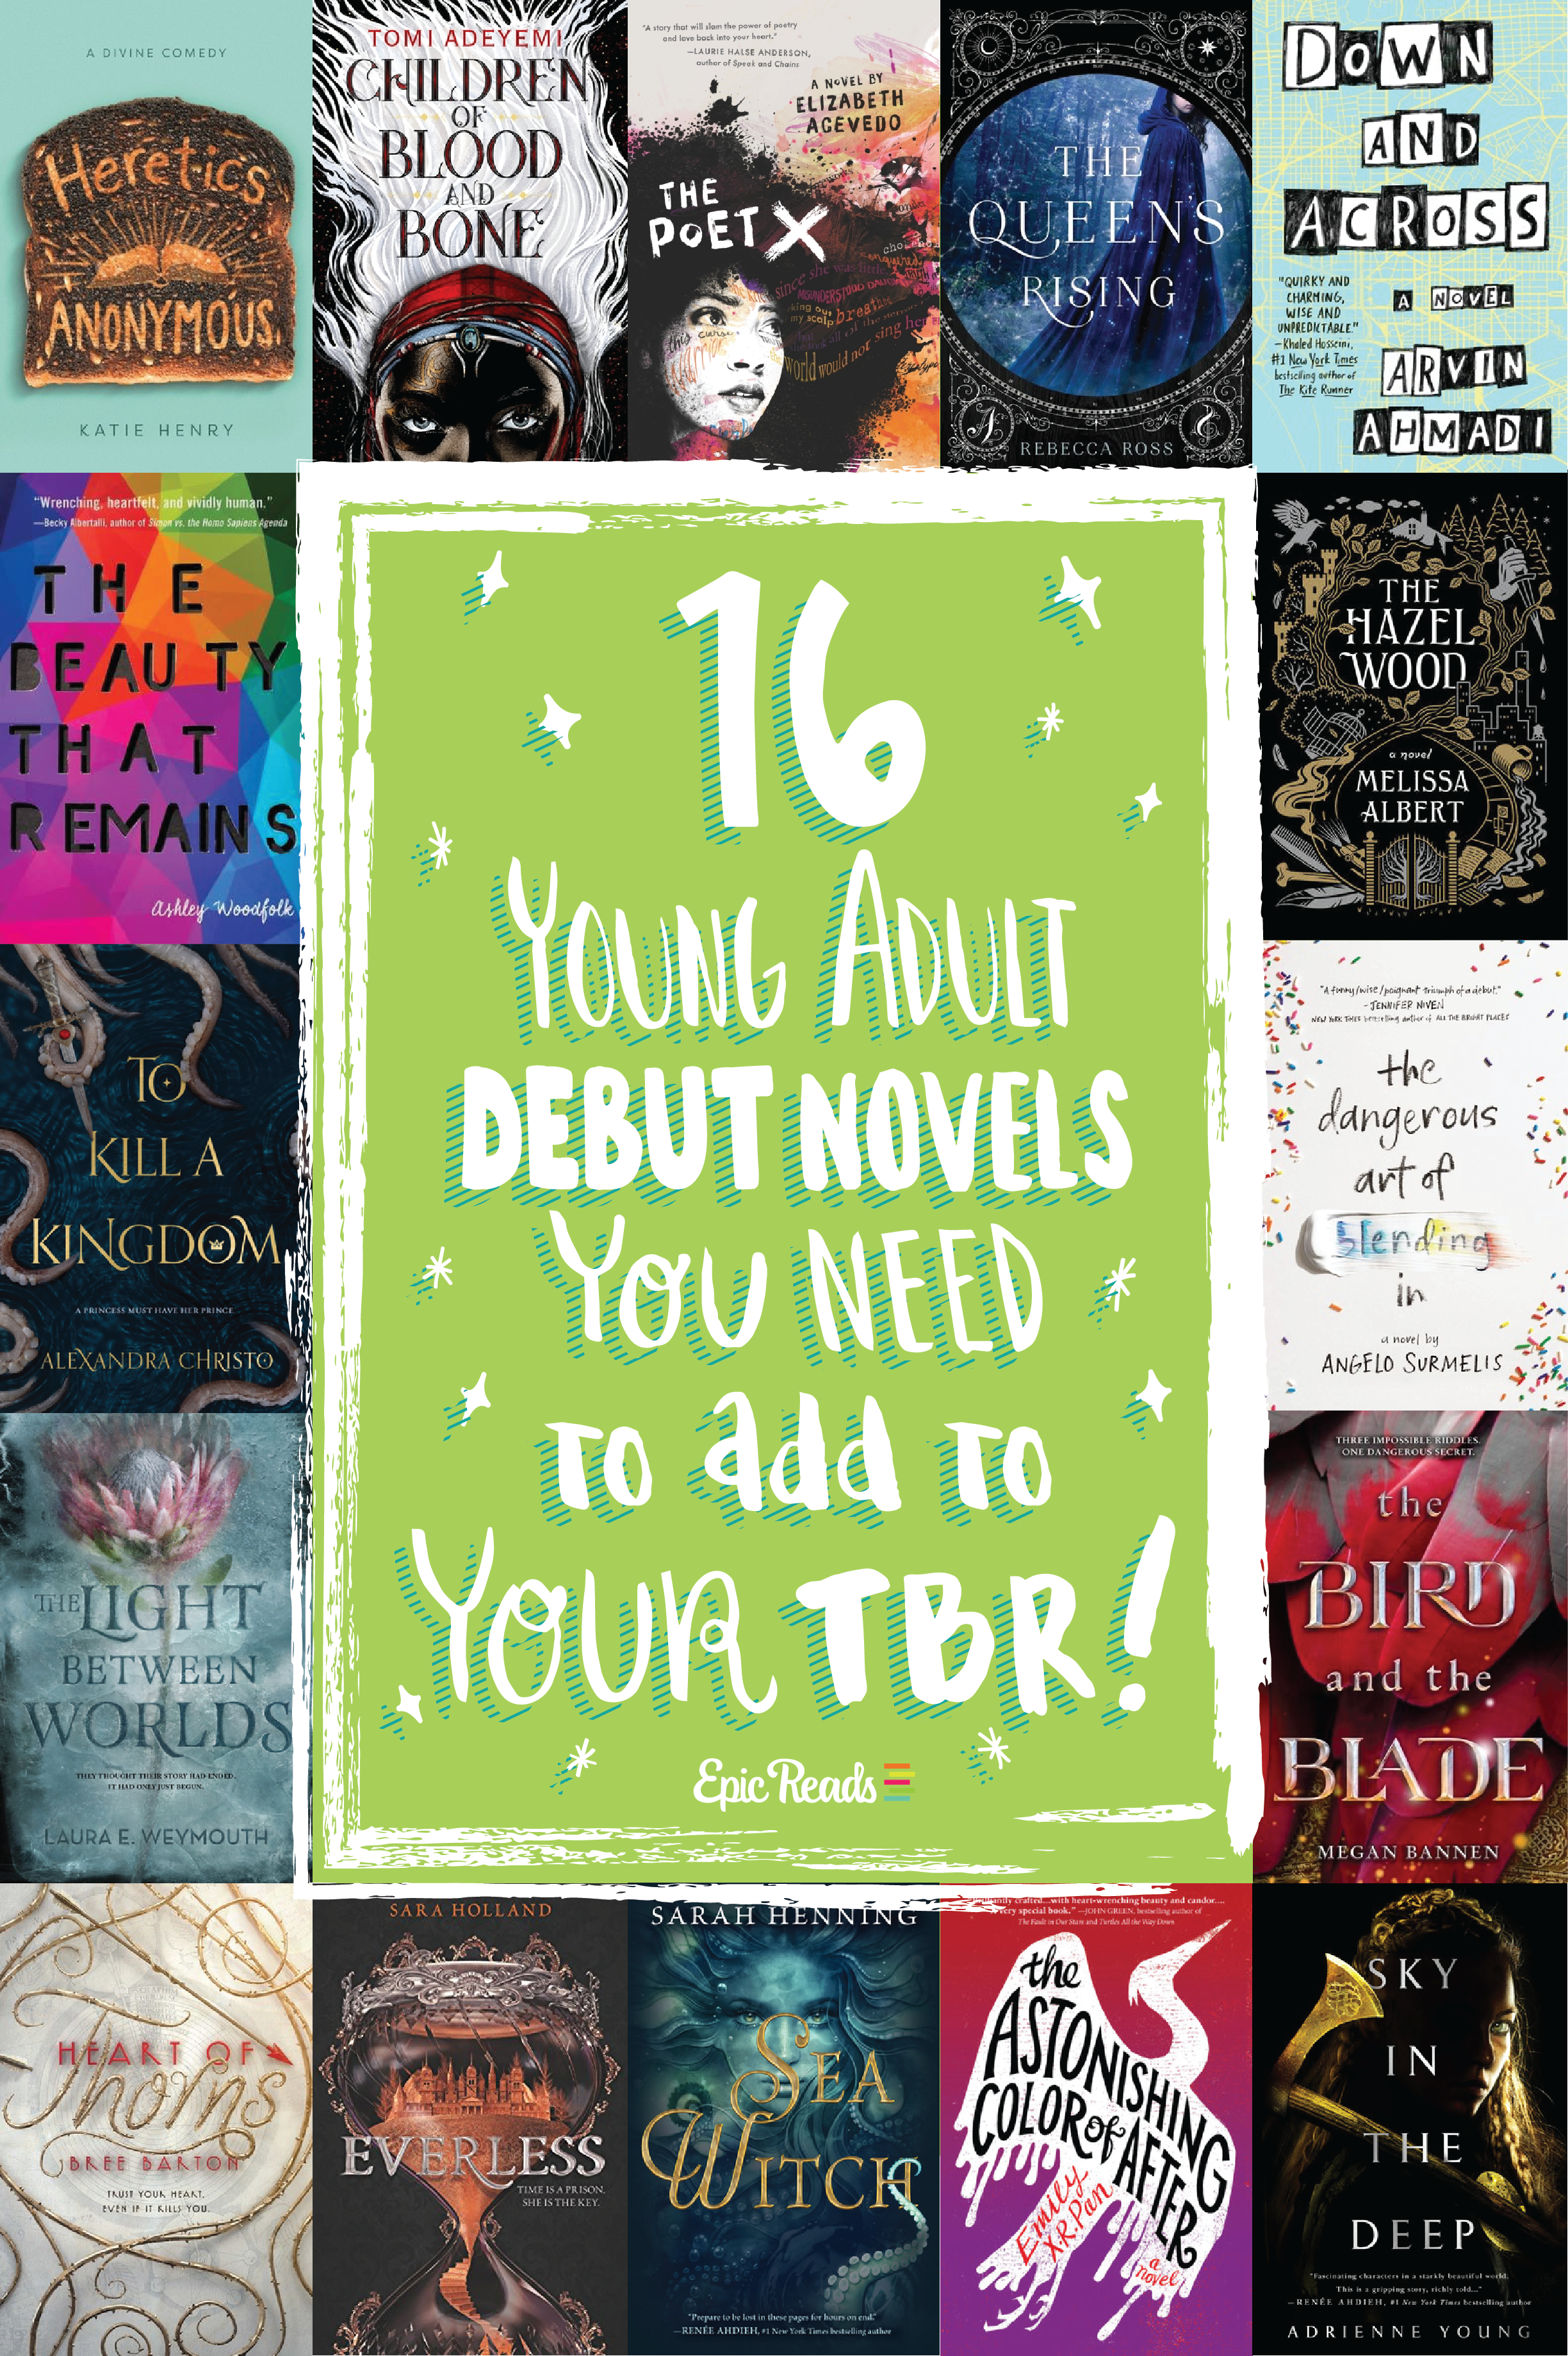 16 YA Debut Novels You Need to Add to Your TBR